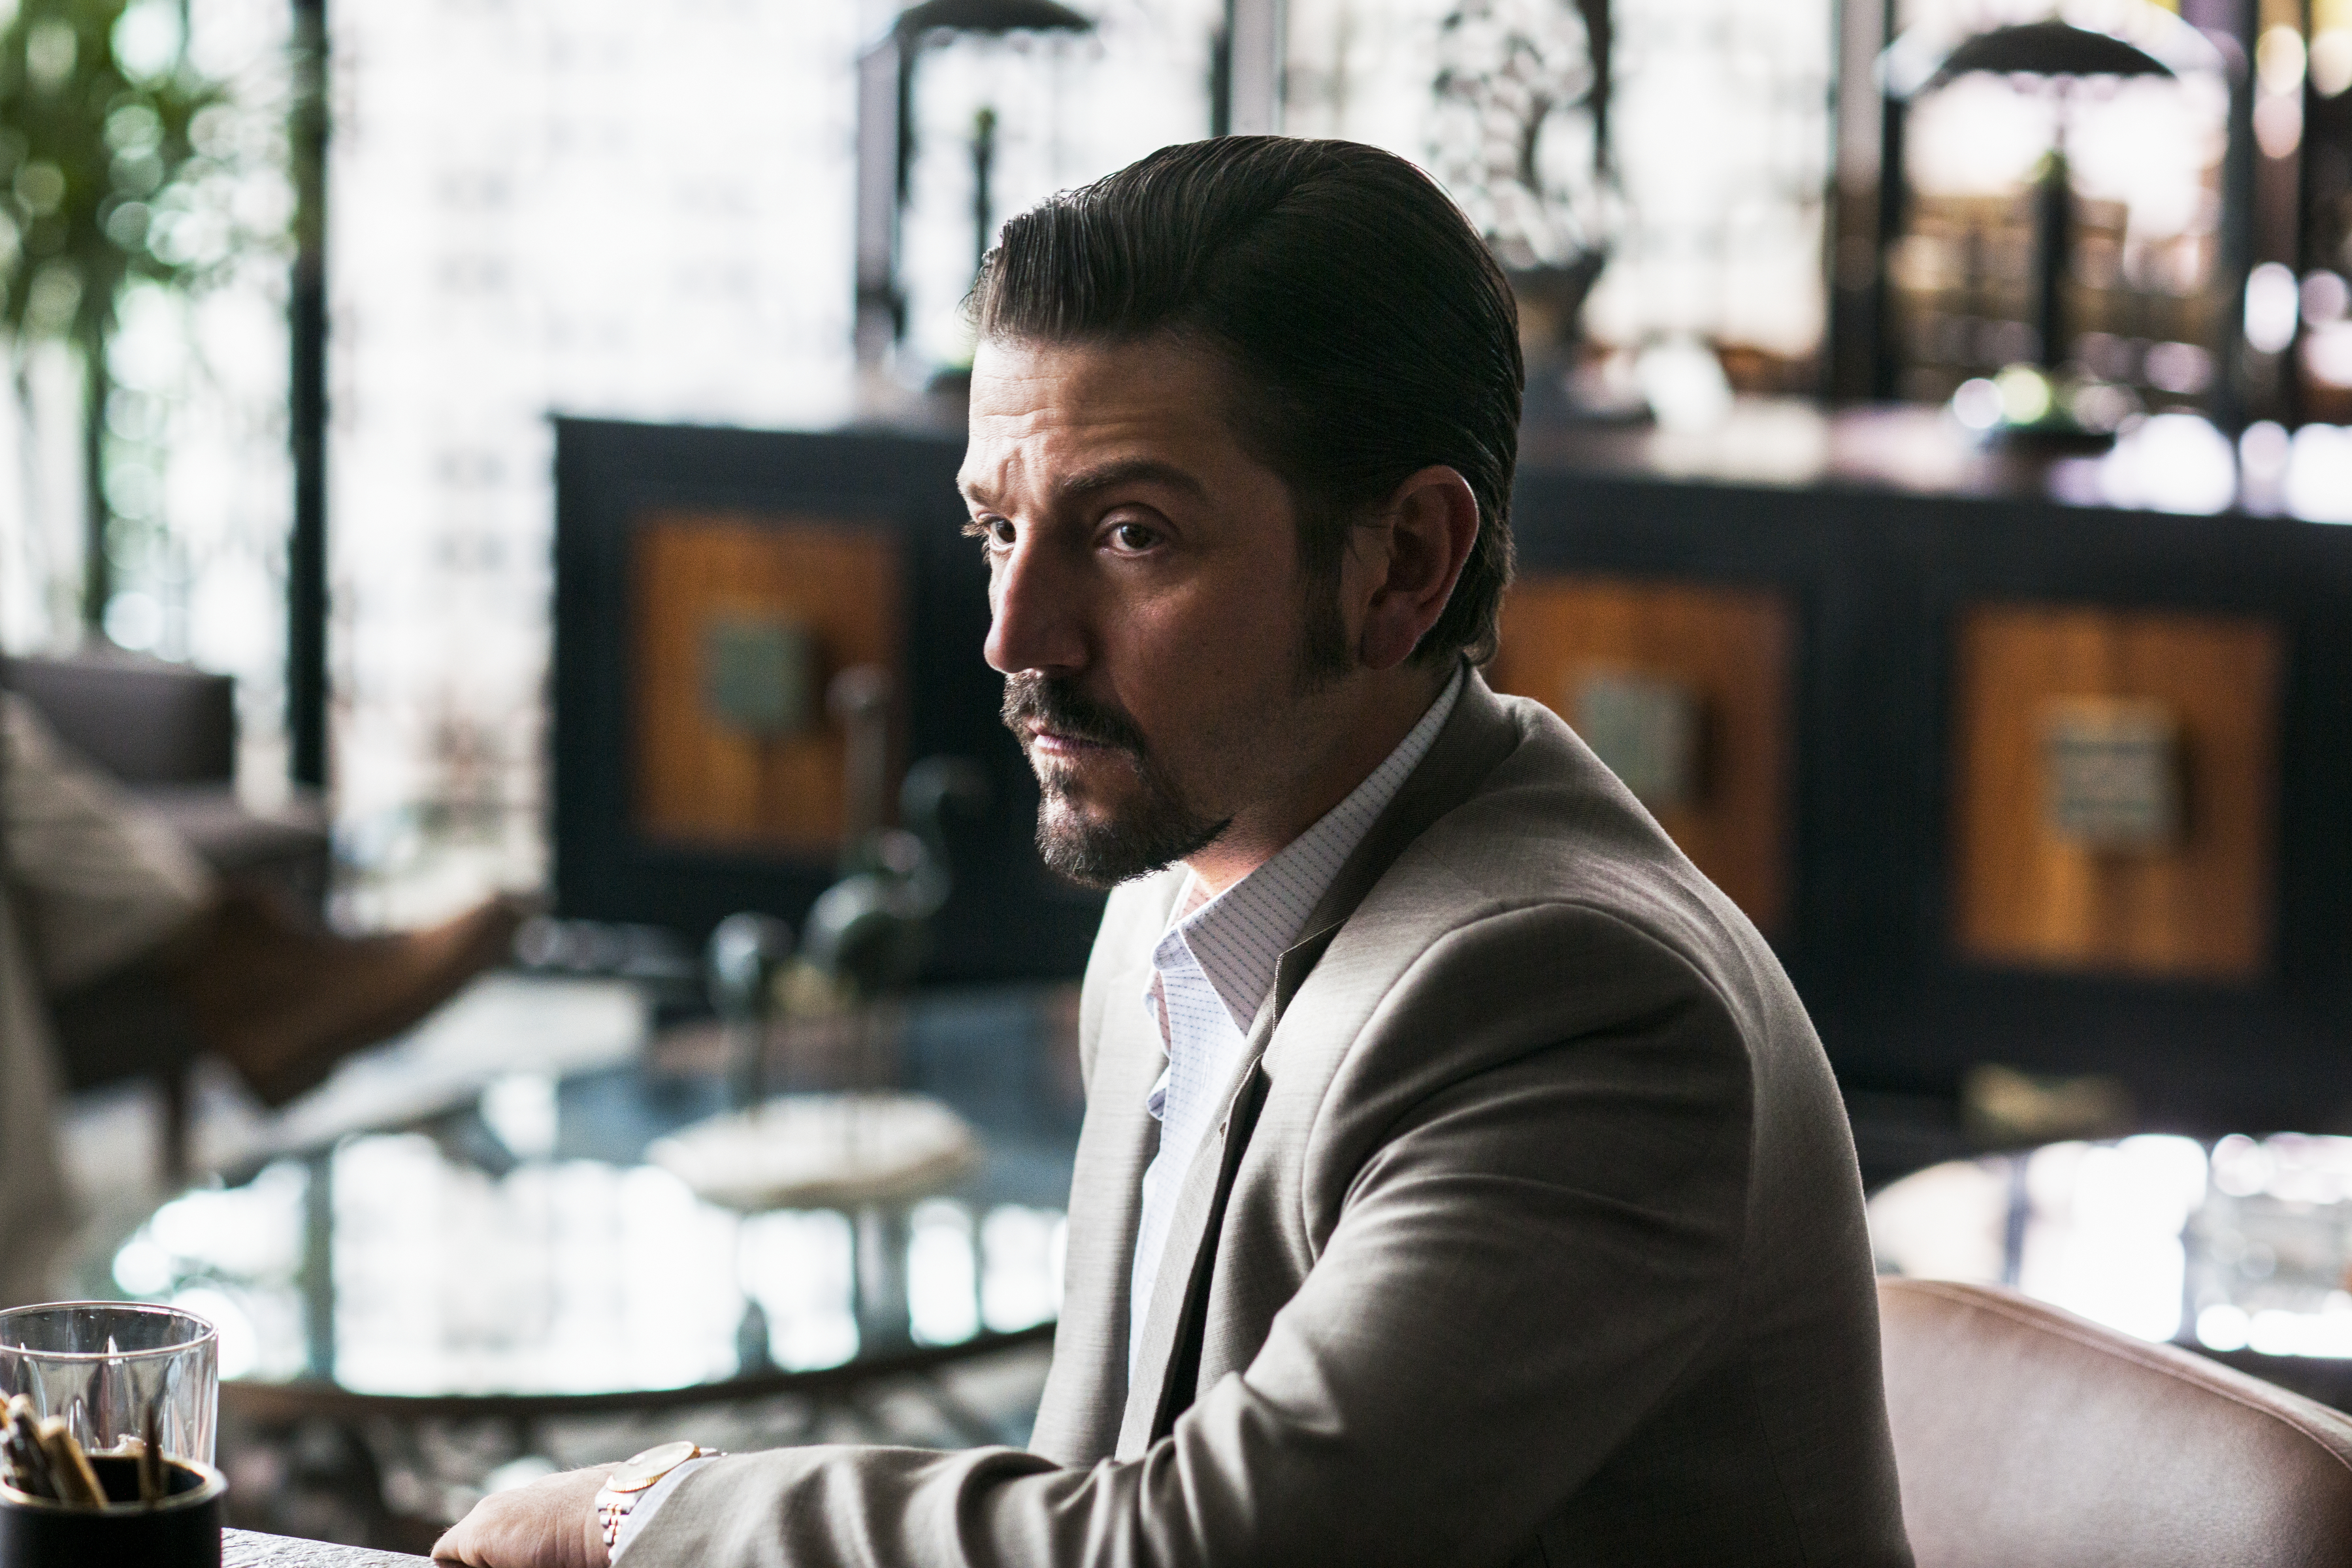 Here's the First Teaser for 'Narcos: Mexico' Starring Diego Luna as a Cartel Boss